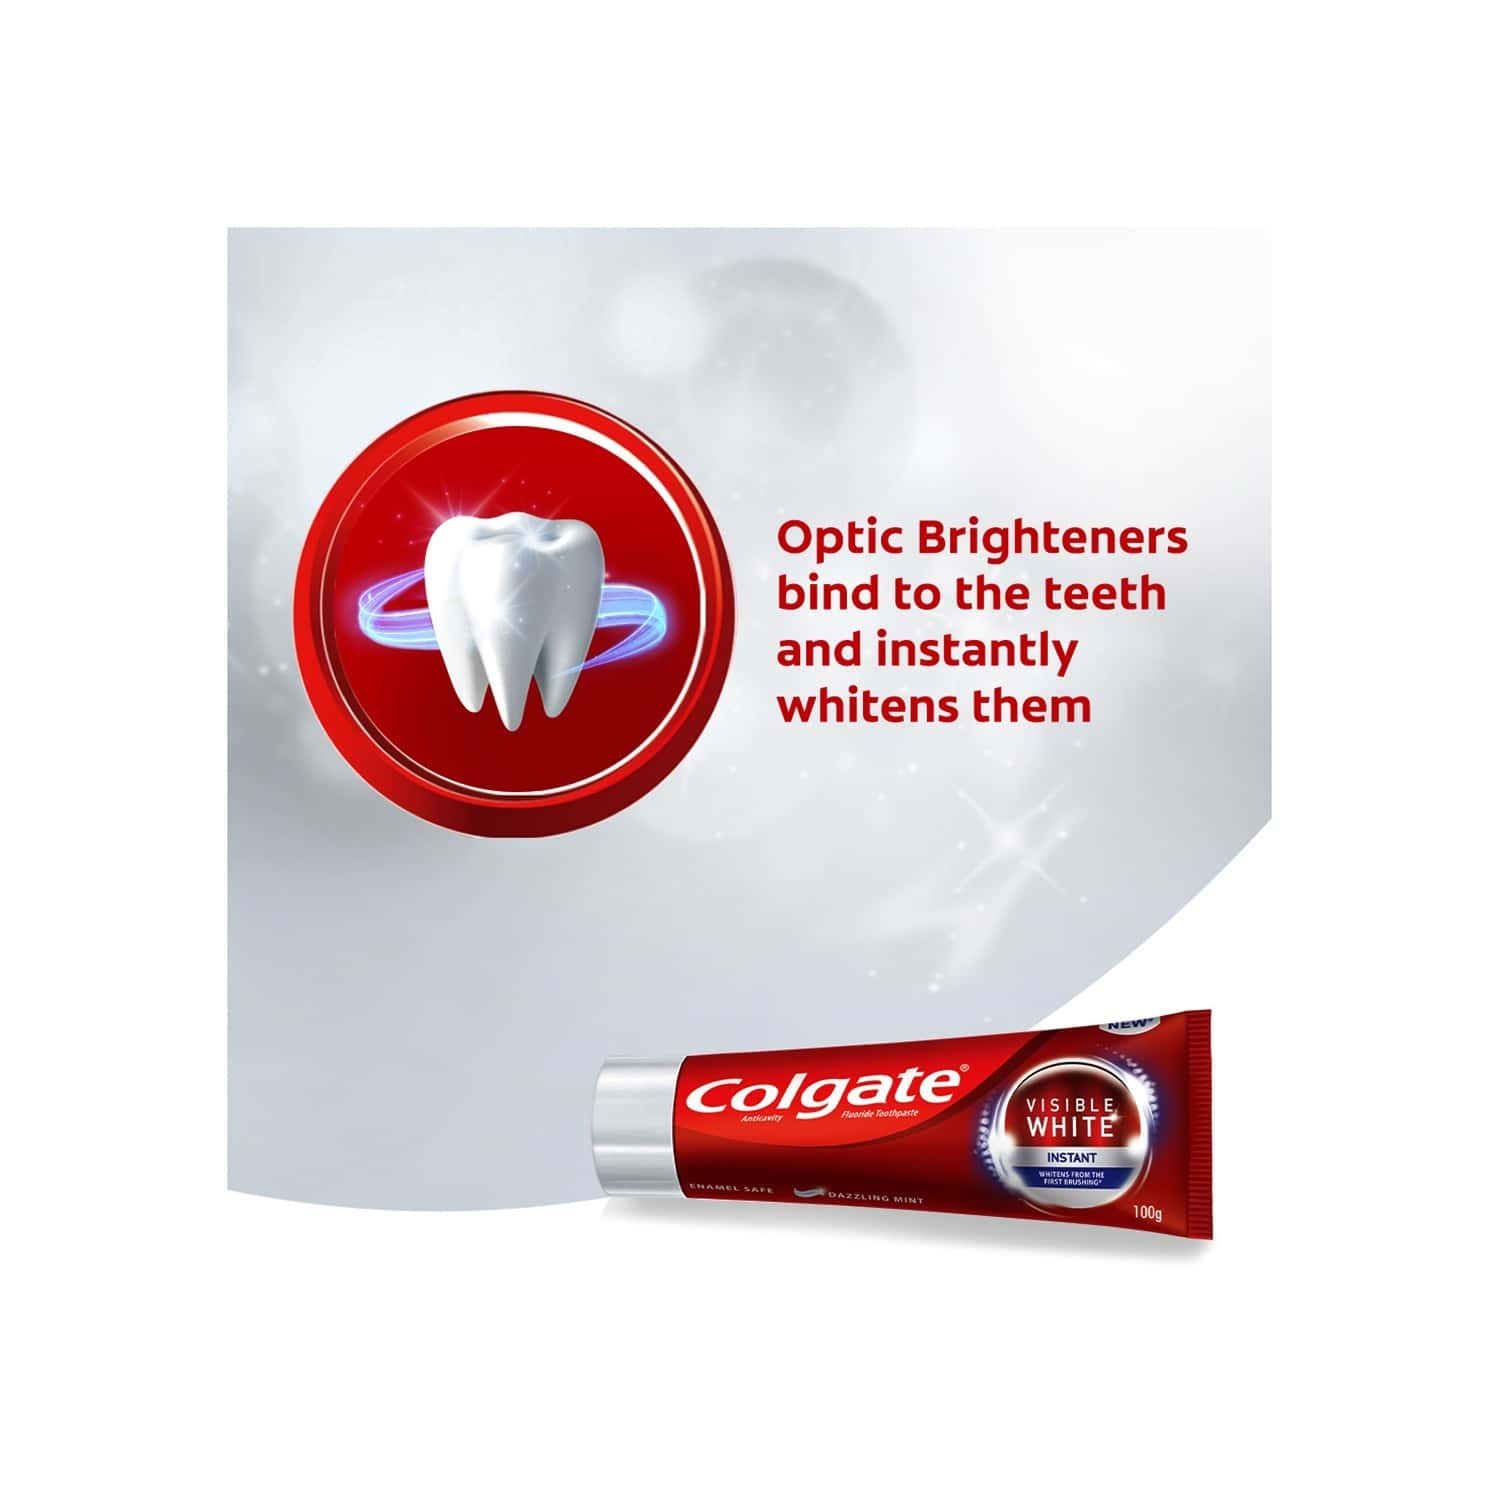 Colgate Visible White Instant Toothpaste - 200gm